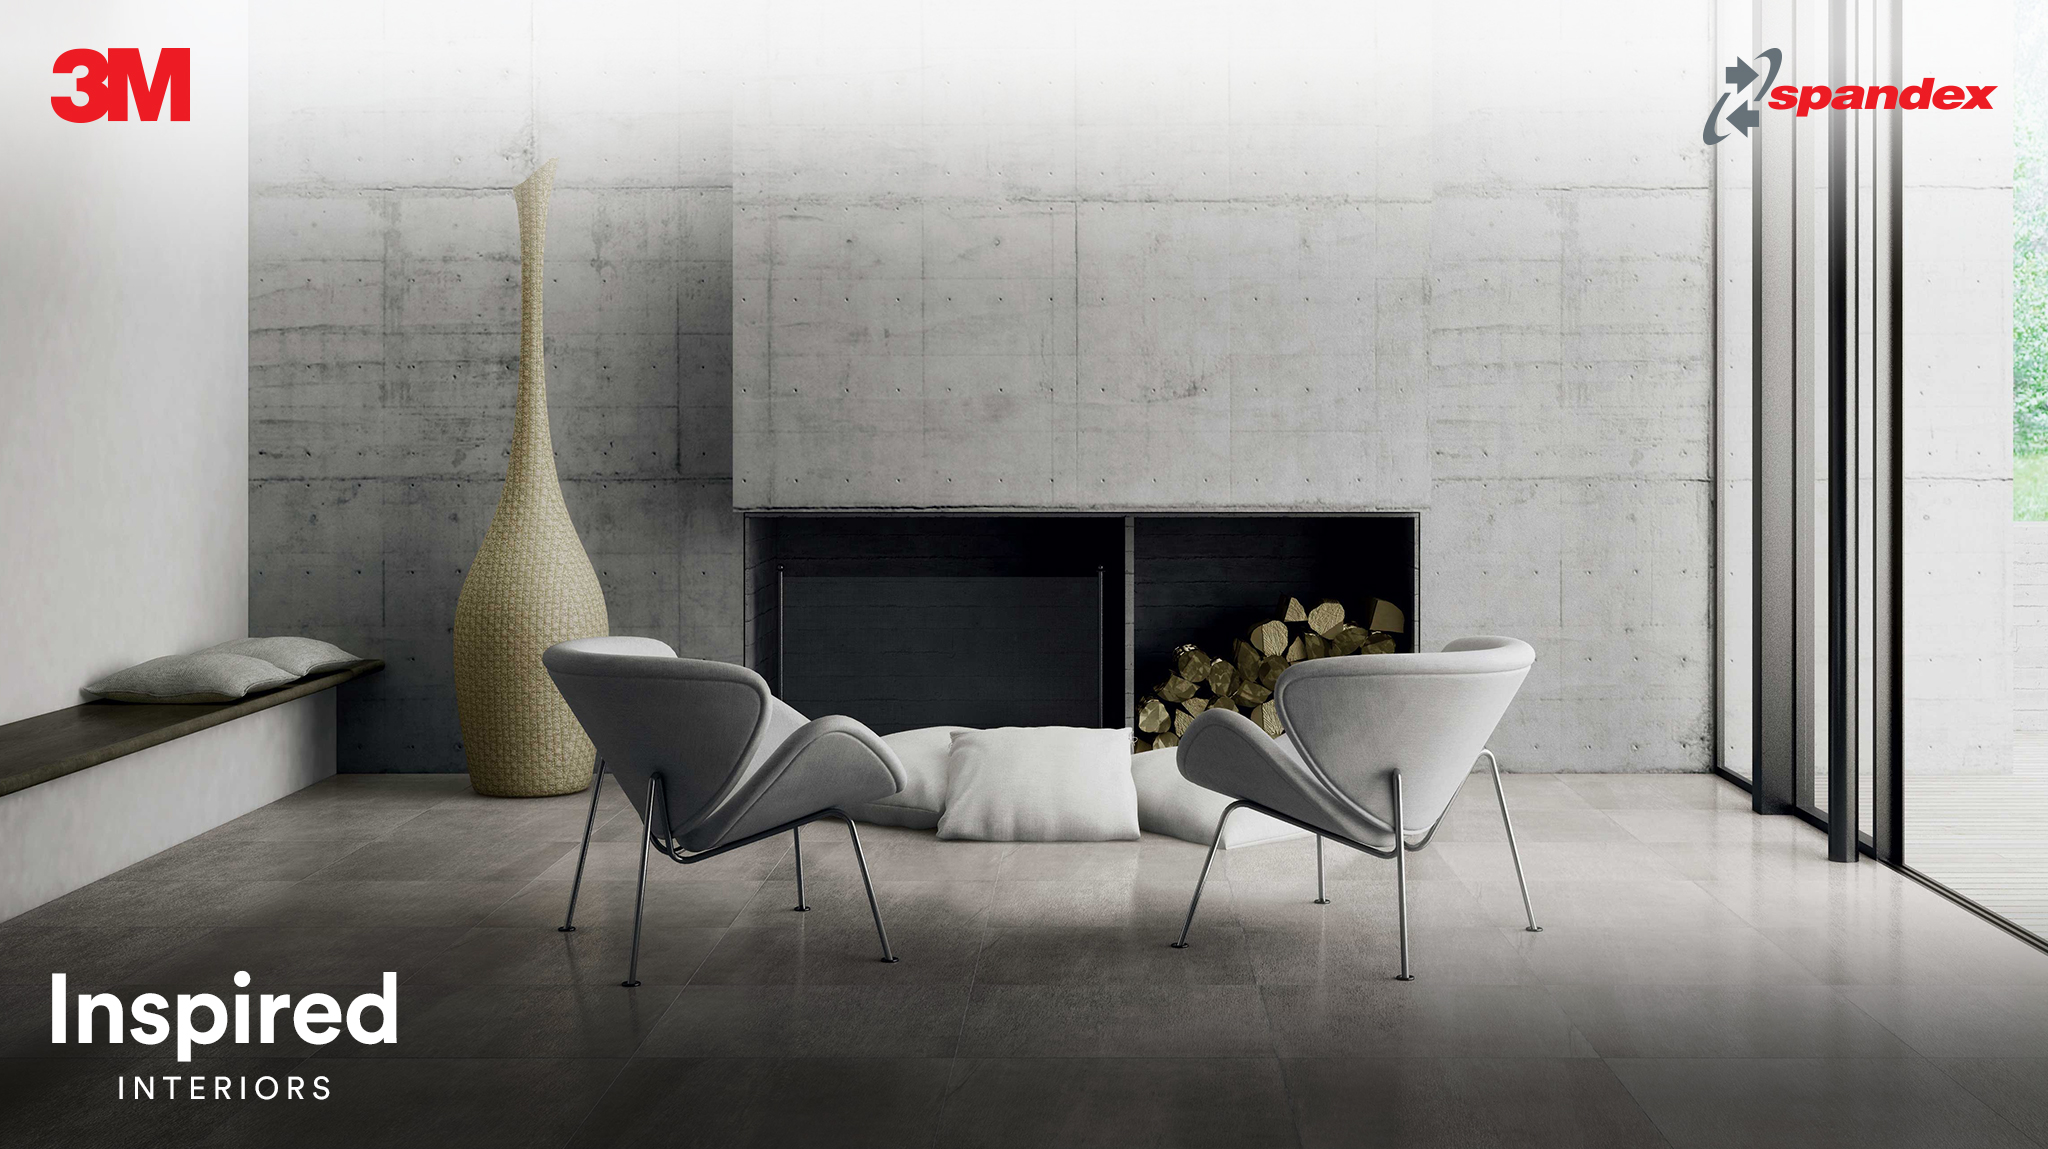 Spandex Launches New Inspired Interiors Competition for Outstanding Architectural Projects featuring 3M products